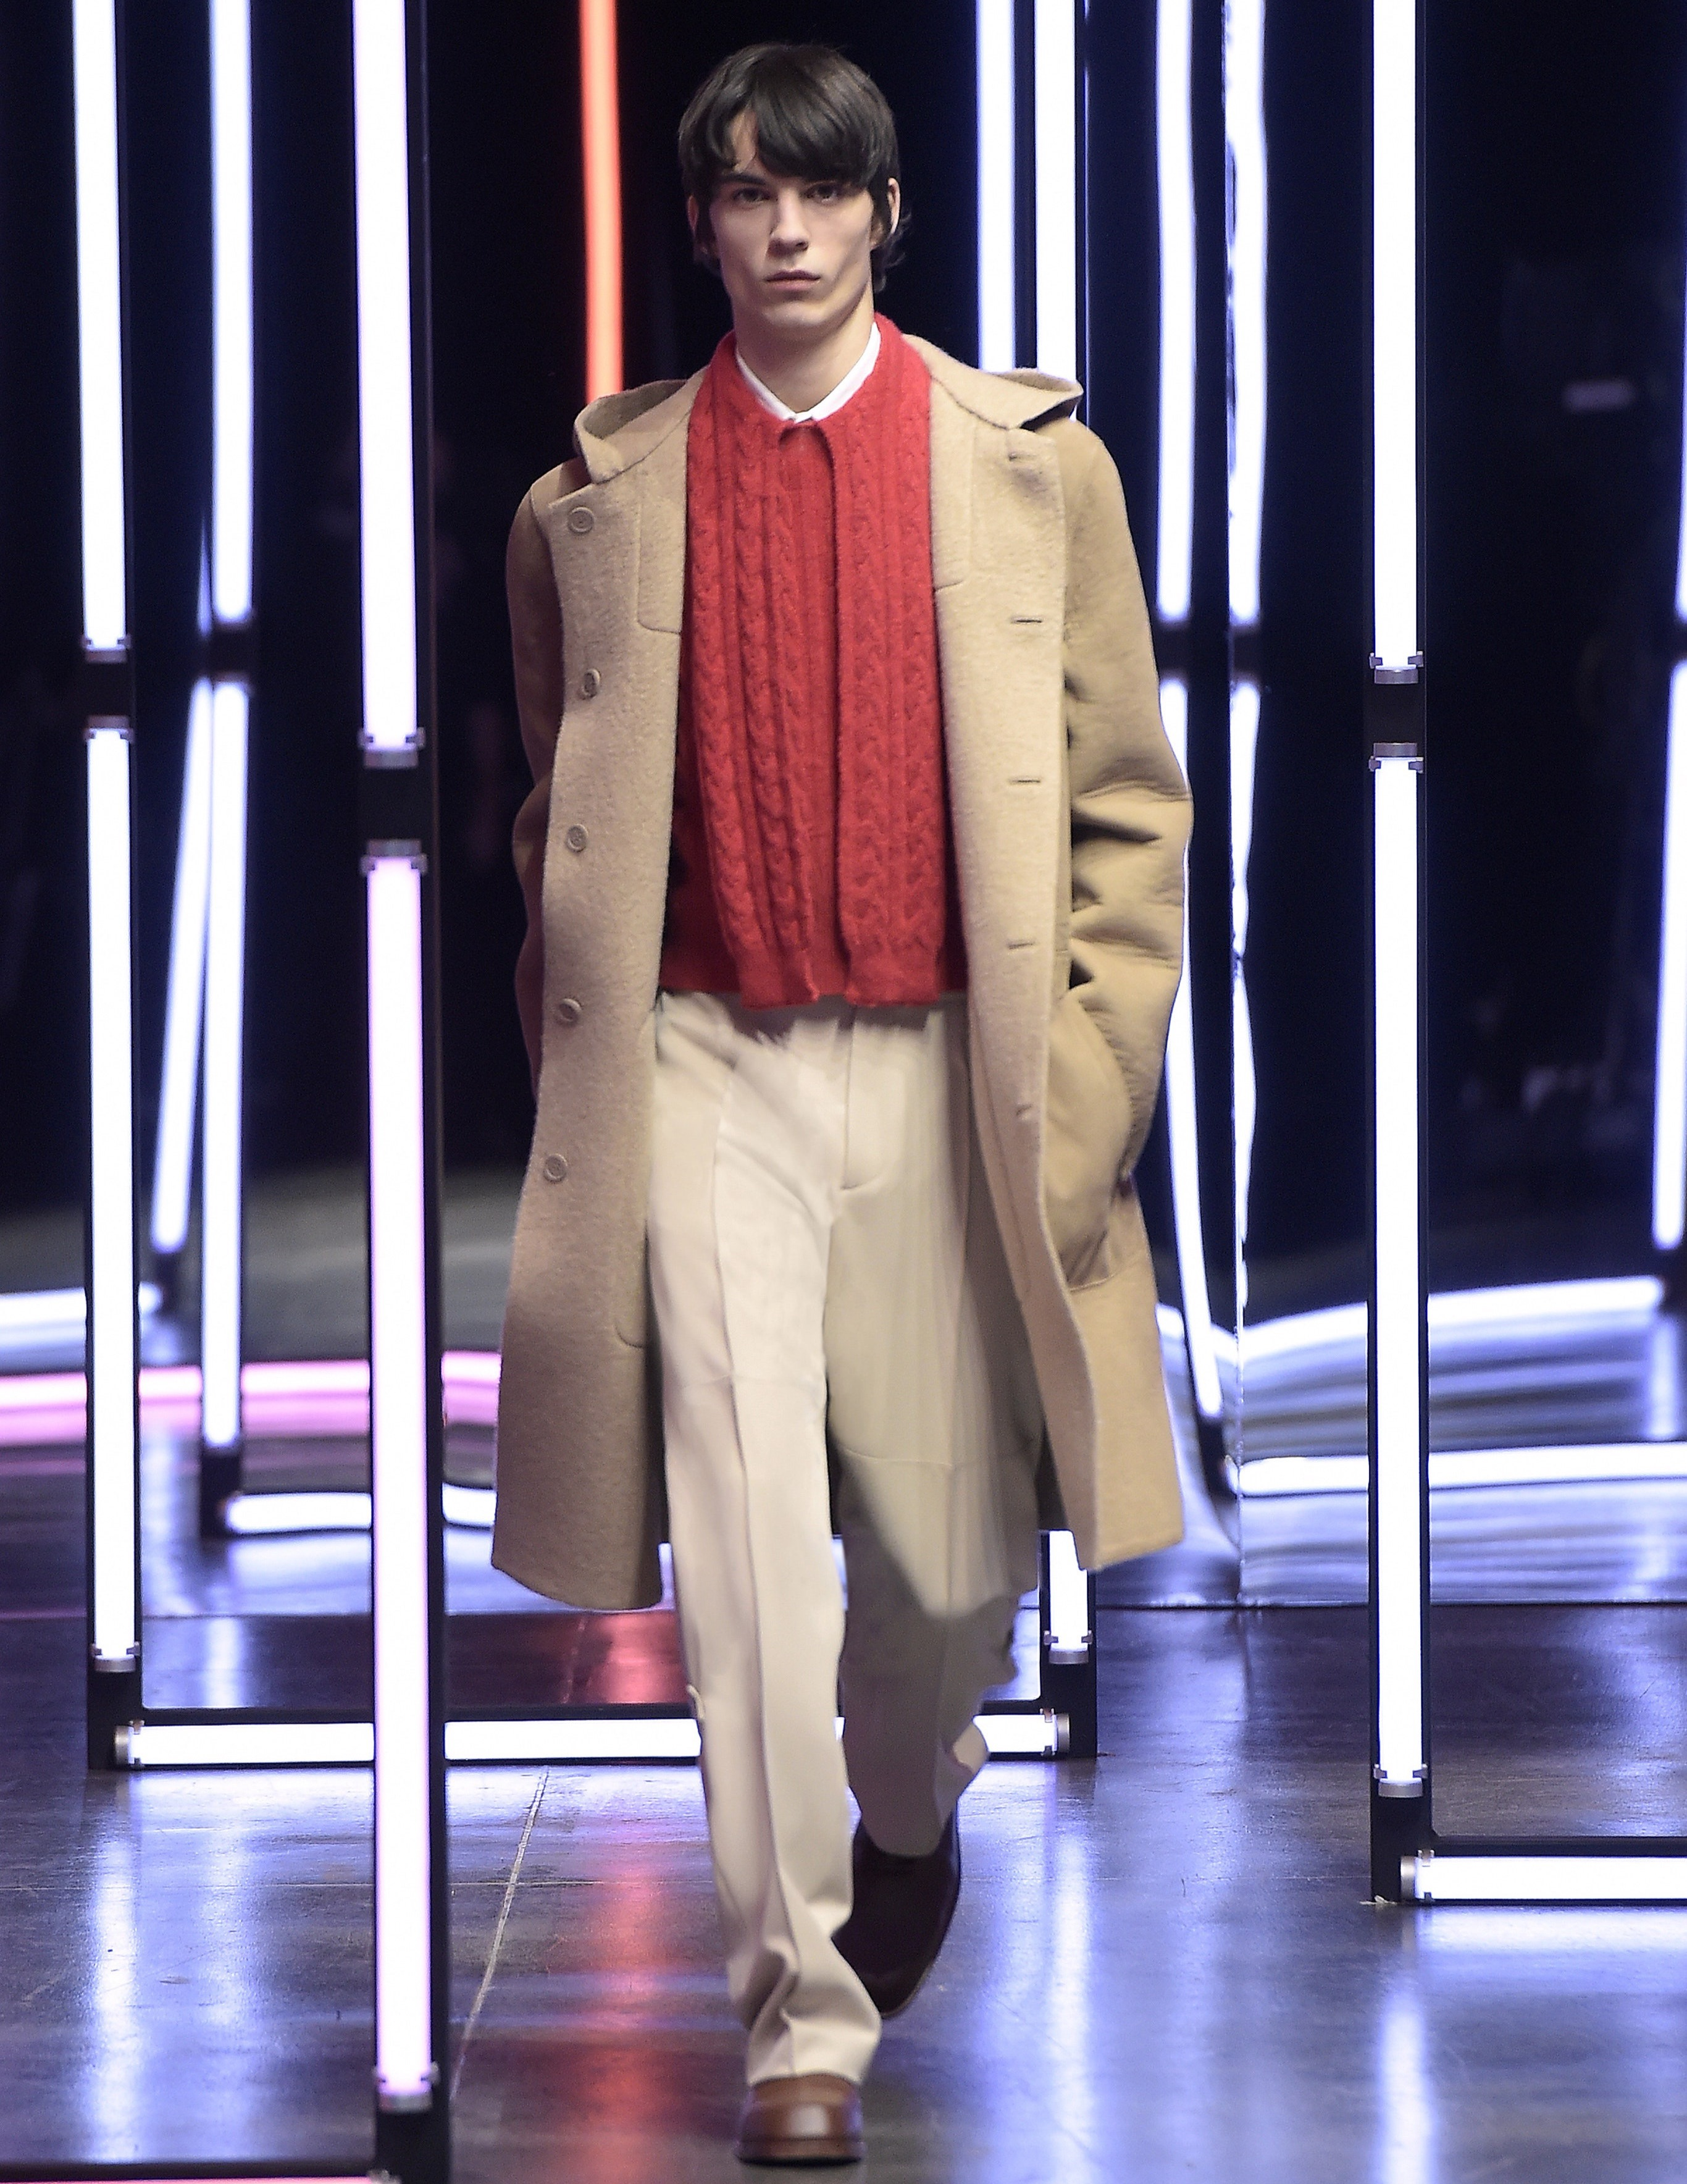 Fendi FW21 show in Milan